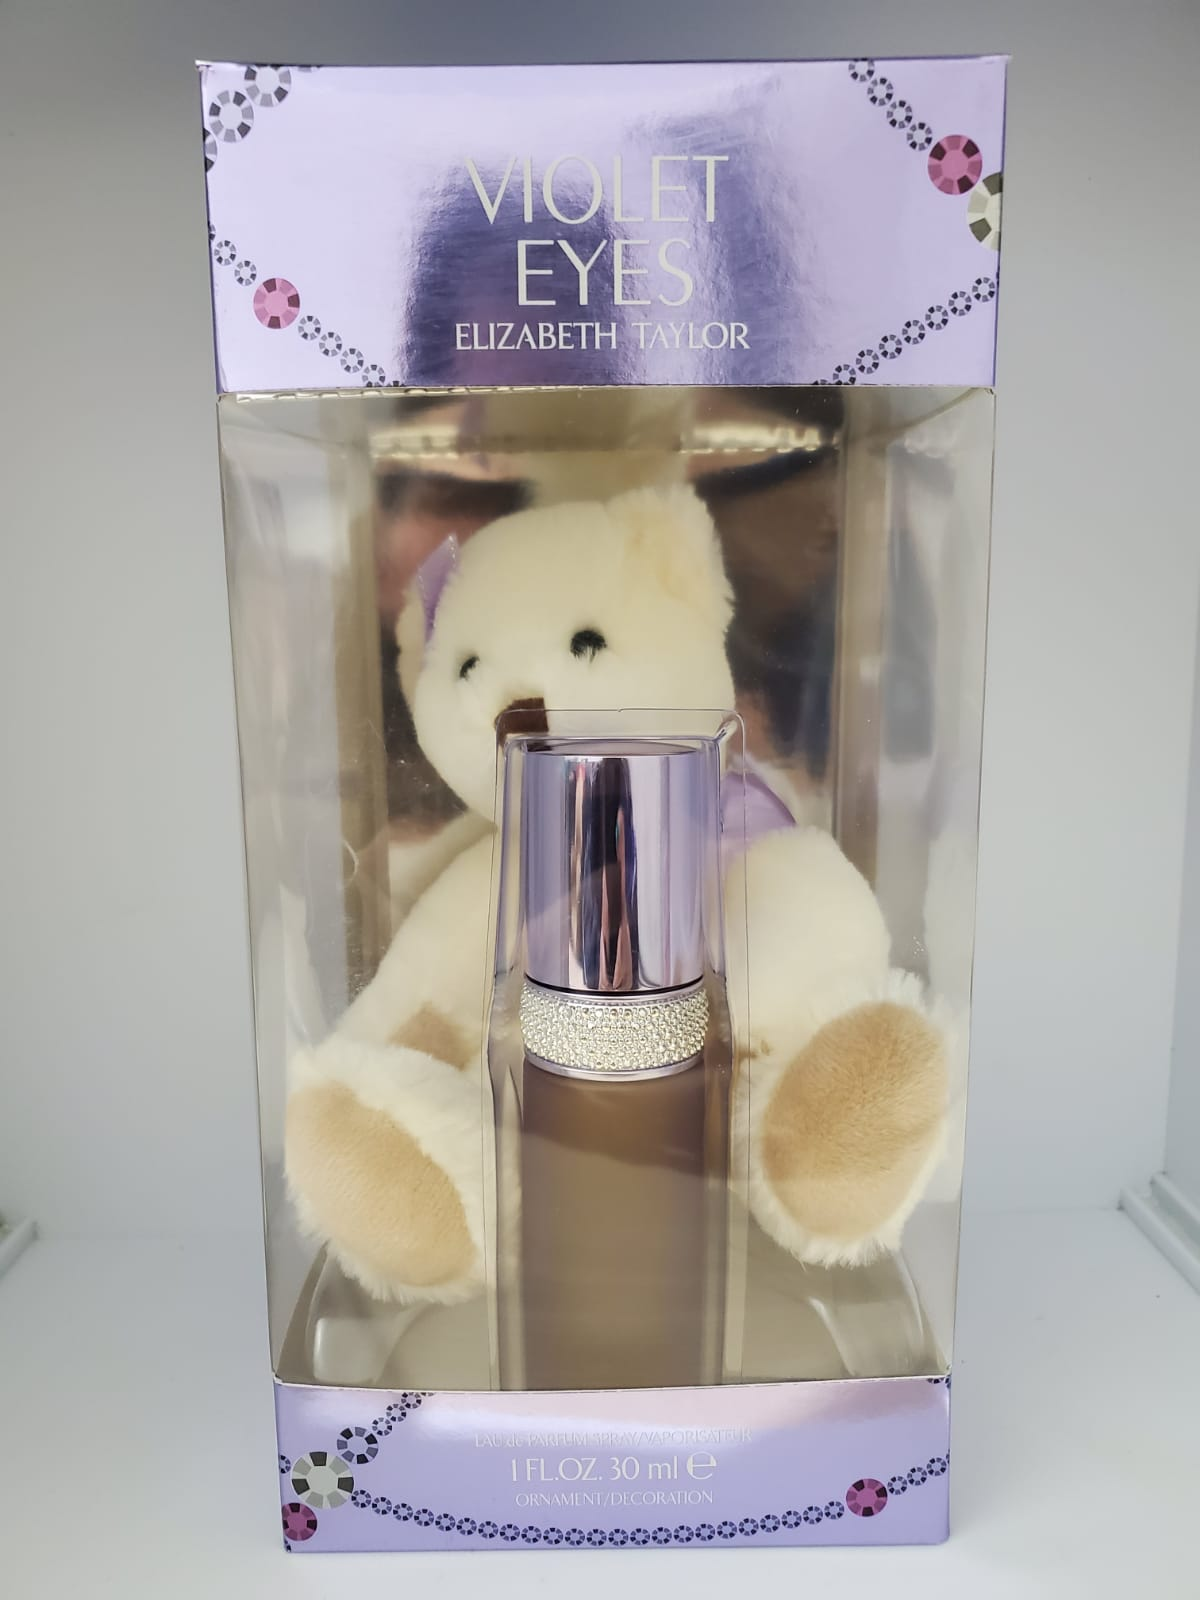 Elizabeth Taylor Violet Eyes 30ML EDP